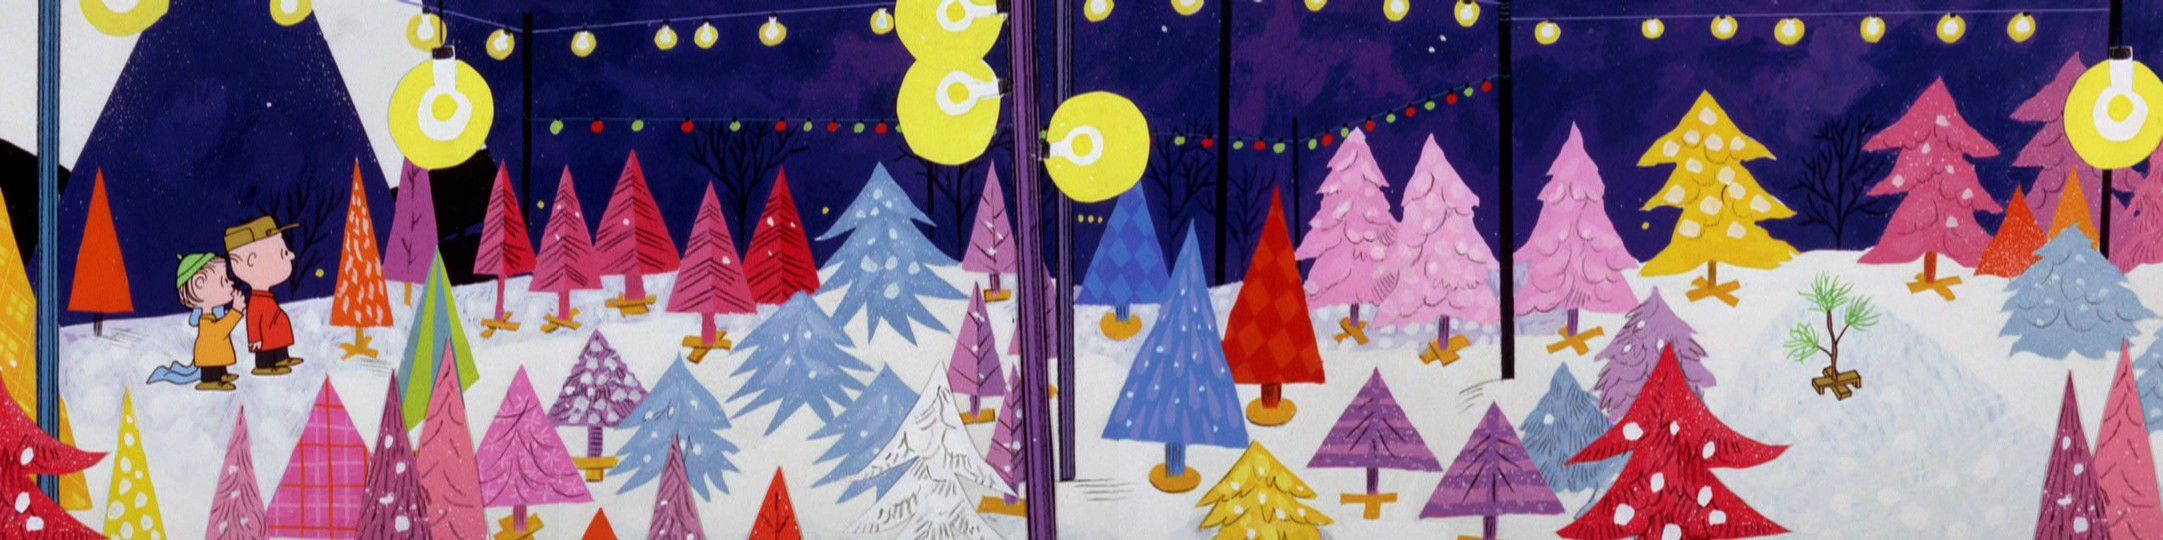 Charlie Brown Christmas Backgrounds - Wallpaper Cave